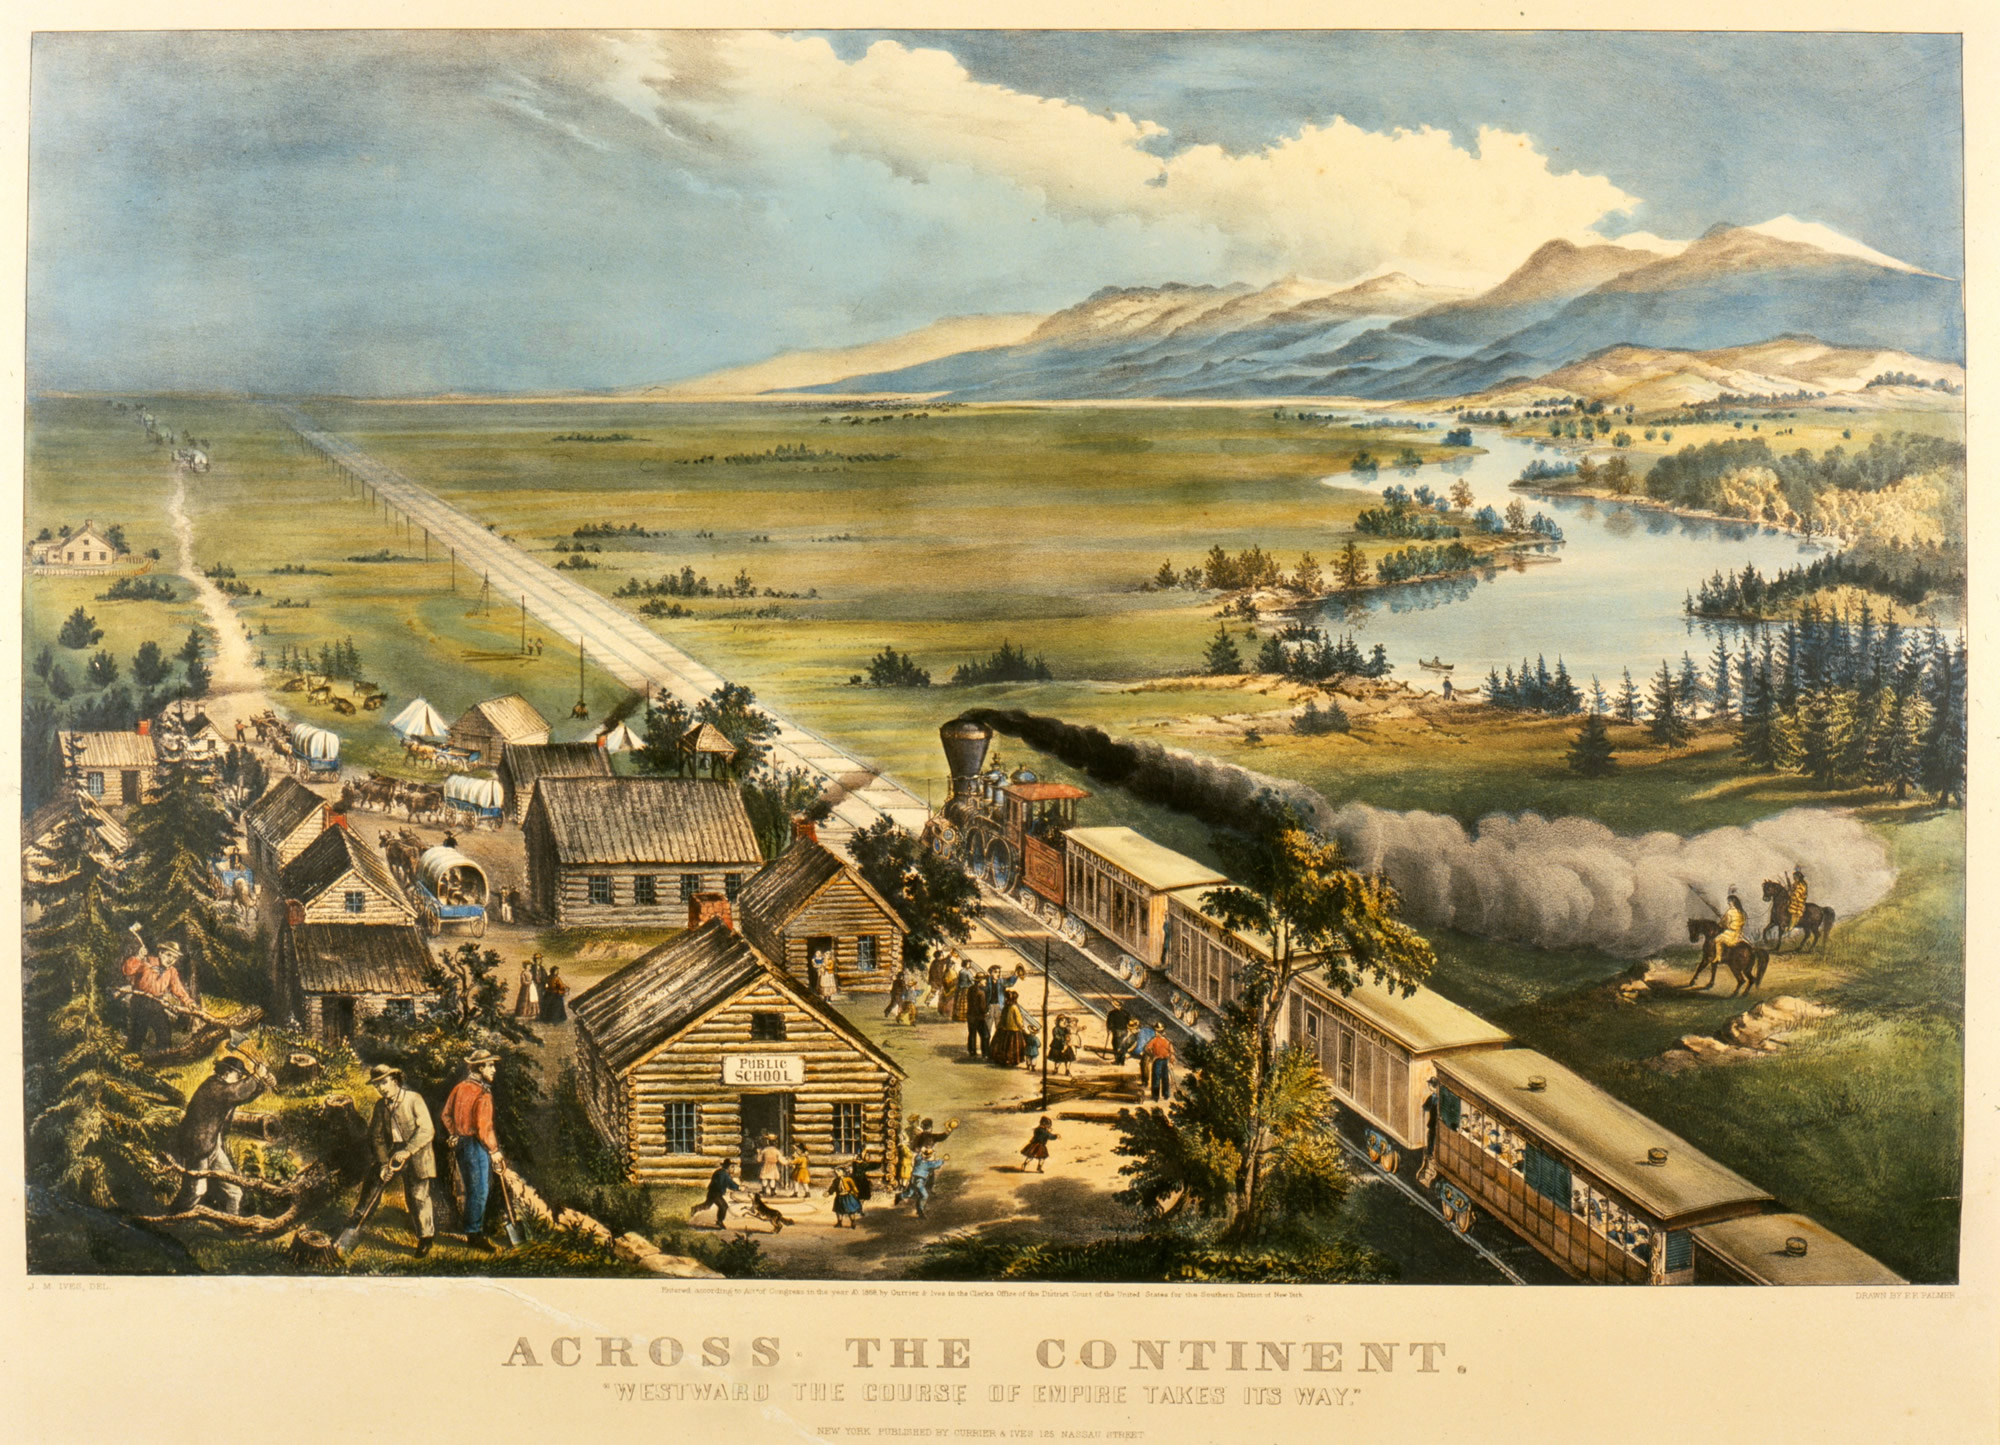 Across the Continent, Lithograph, Frances F. Palmer, 1869.